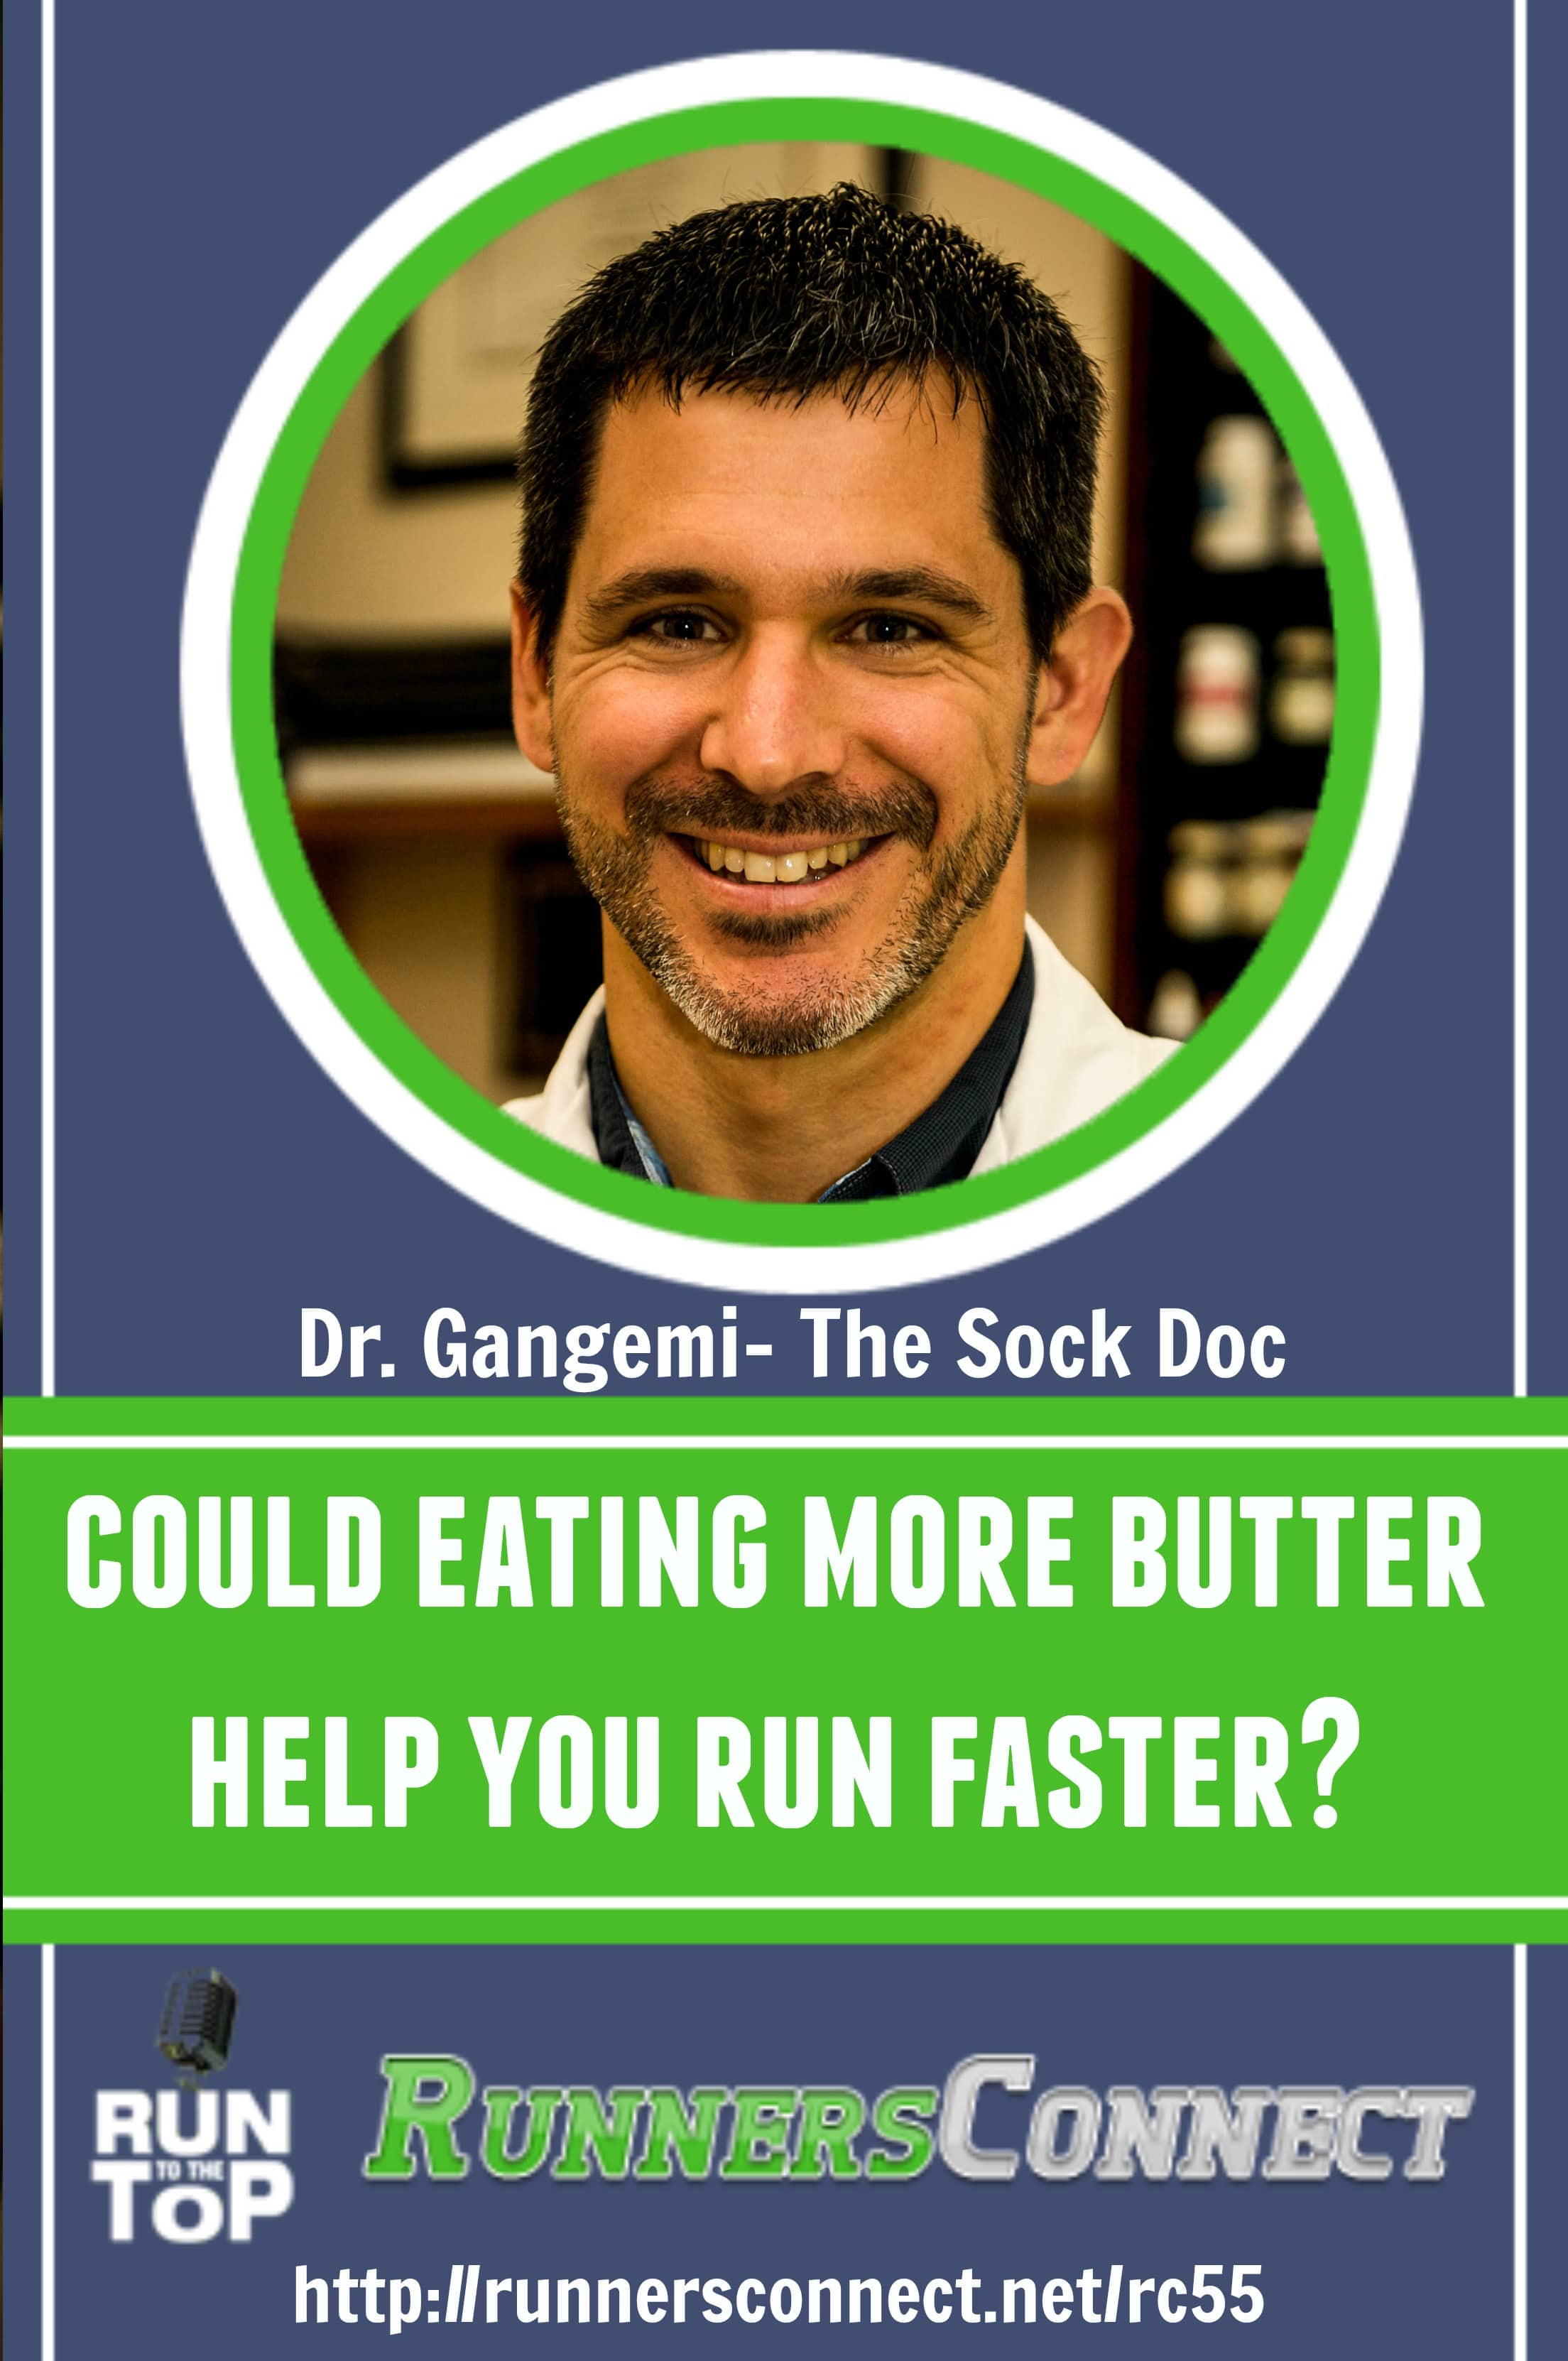 If you are fed up of the aches and pains that regularly arise as a runner, this interview with the Sock-Doc is just what you need. Dr Gangemi explains what you need to heal naturally, and stay injury free.